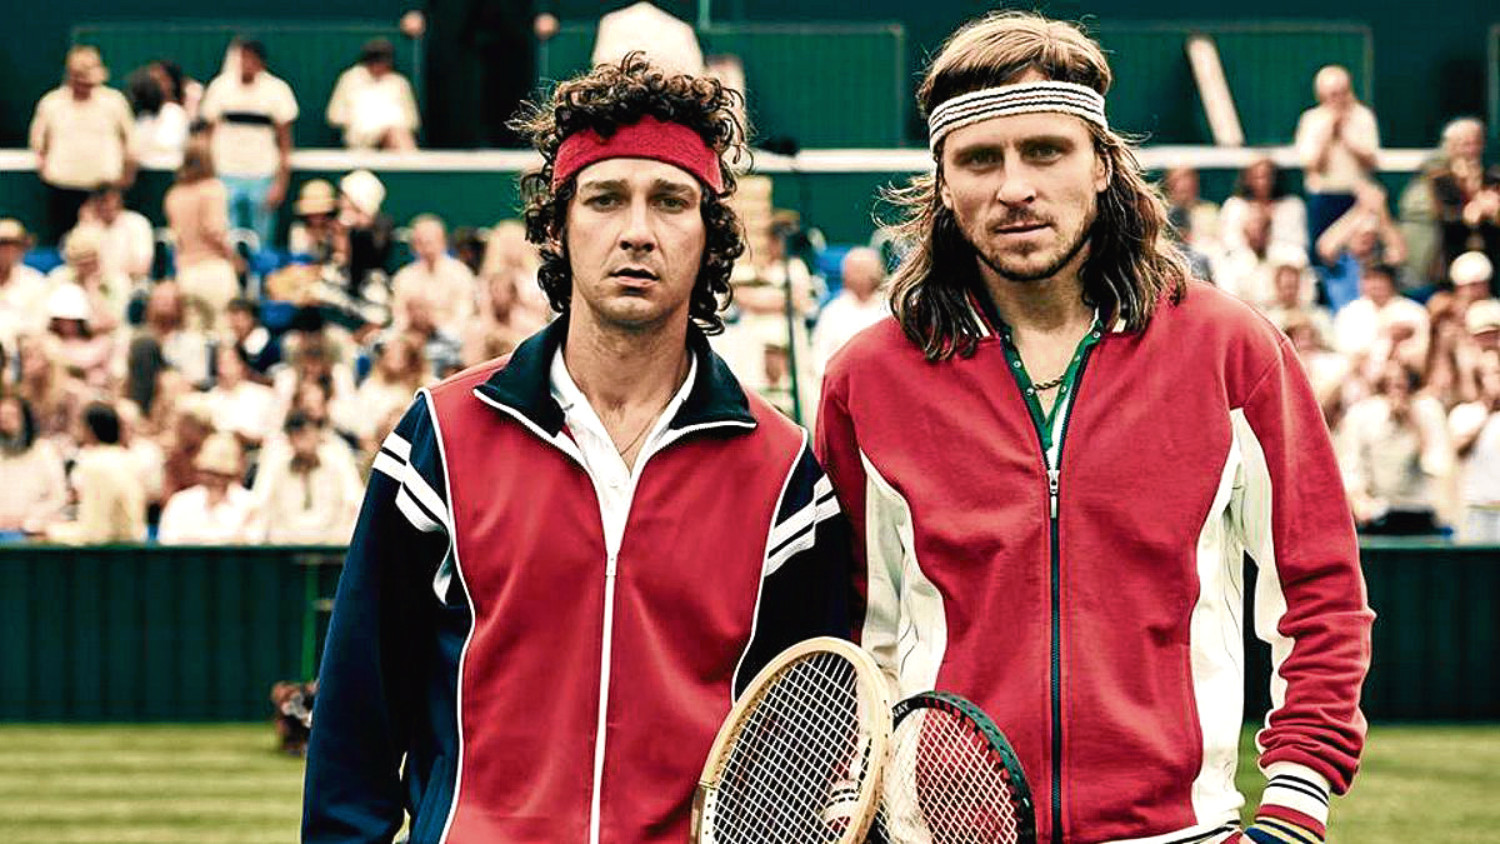 Shia LaBeouf as McEnroe